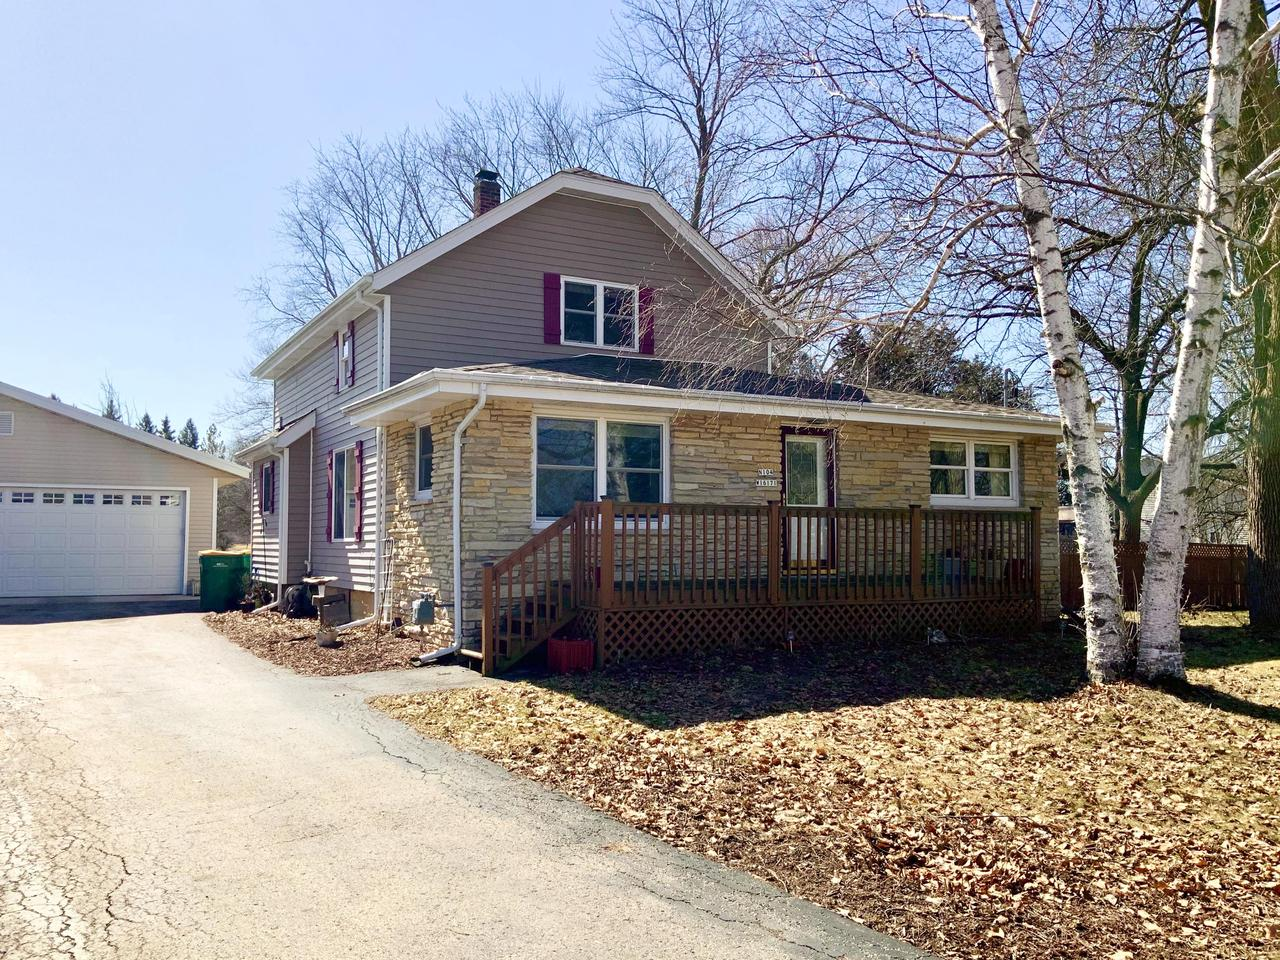 AMAZING OPPORTUNITY to subdivide this beautiful 5 acre property into a max. of 5 separate sellable lots (per seller). GREAT INVESTMENT!! Survey available. Seller has received preliminary approval from Village of Germantown to subdivide. Live in well-maintained, charming updated farmhouse w/9 car garage & subdivide the remainder of lots to sell (per seller). Road access & water & sewer avail. at South end of property. 9 car garage (30'x70') w/metal roof & 9ft ceilings plus 4 garage door access points, equipped with car lift & 100 amp service. Property features 200 amp electrical panel, updated kitchen, newer windows & flooring, abundance of storage throughout, composite deck (21'x15') fruit trees on property, water irrigation system w/private well, walking trails, fire pit & great location!